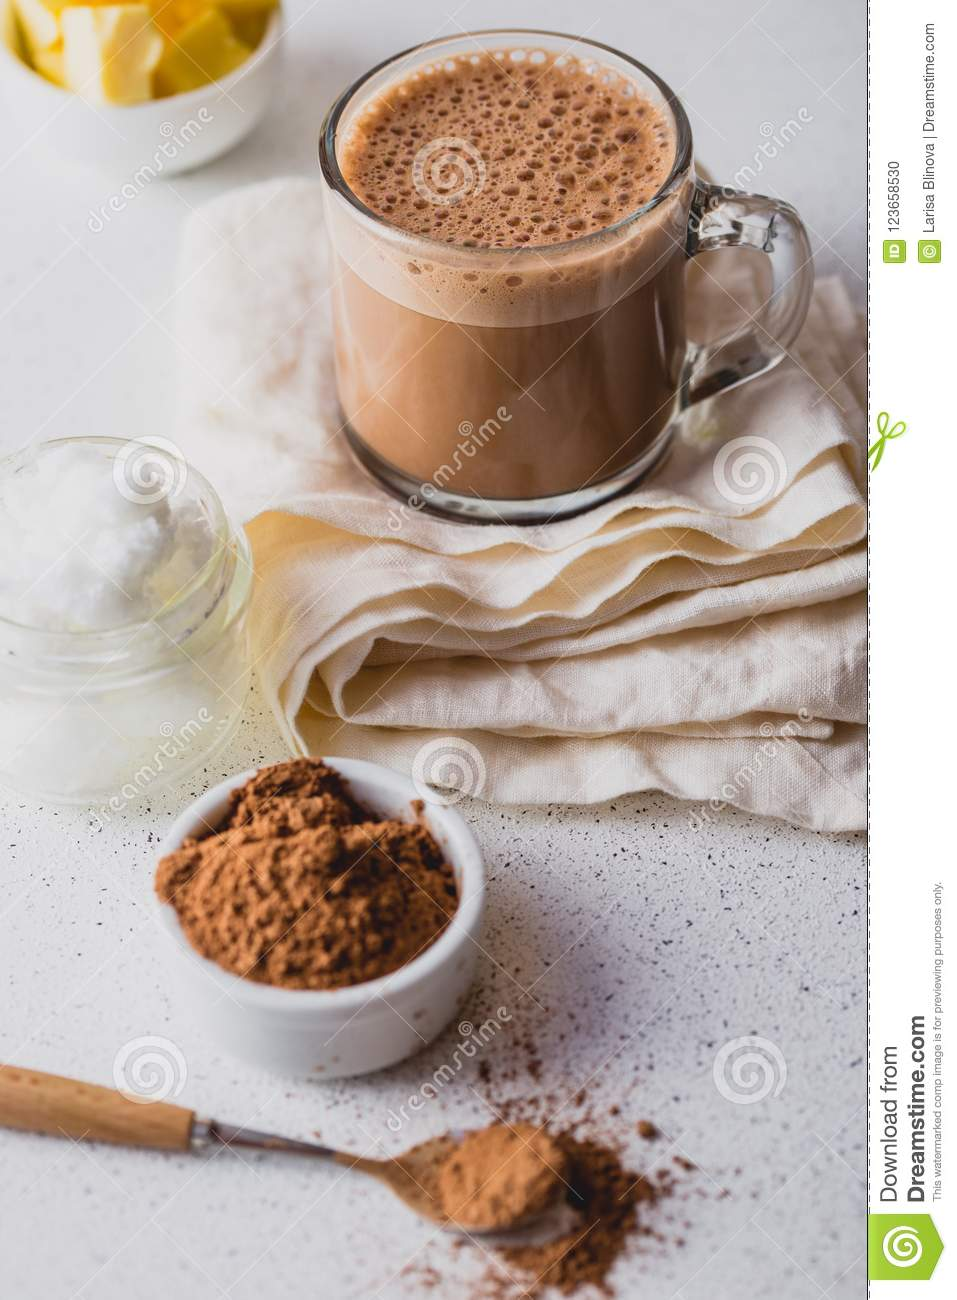 BULLETPROOF CACAO. Ketogenic keto diet hot drink. Cacao blended with coconut oil and butter. Cup of bulletproof cacao